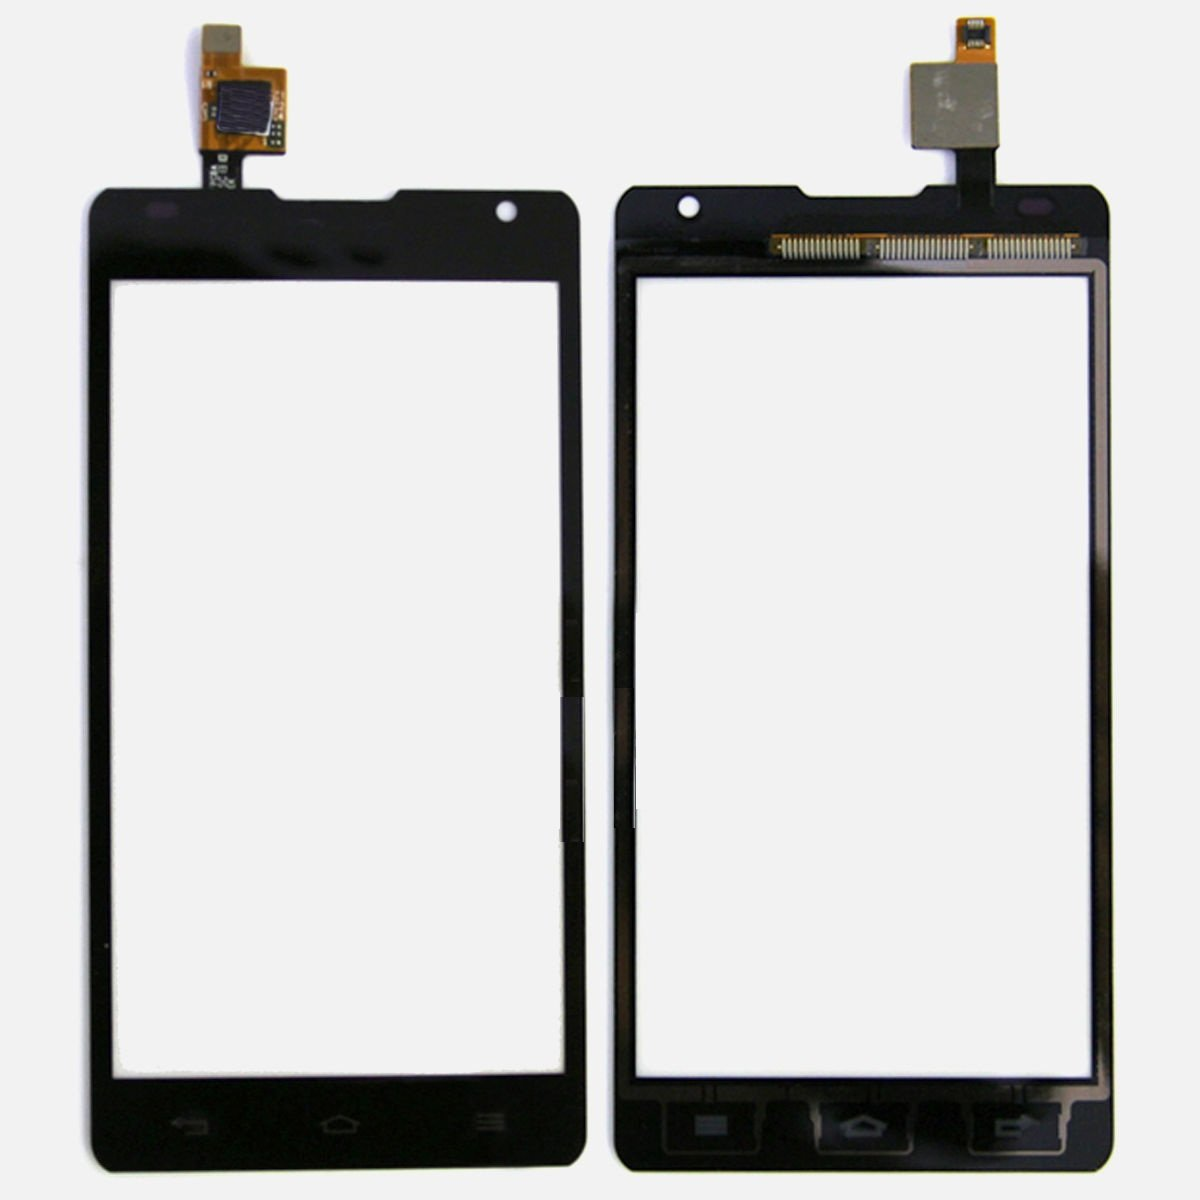 New Original LG Spirit MS870 Front Outer Top Glass Touch Lens Screen Digitizer